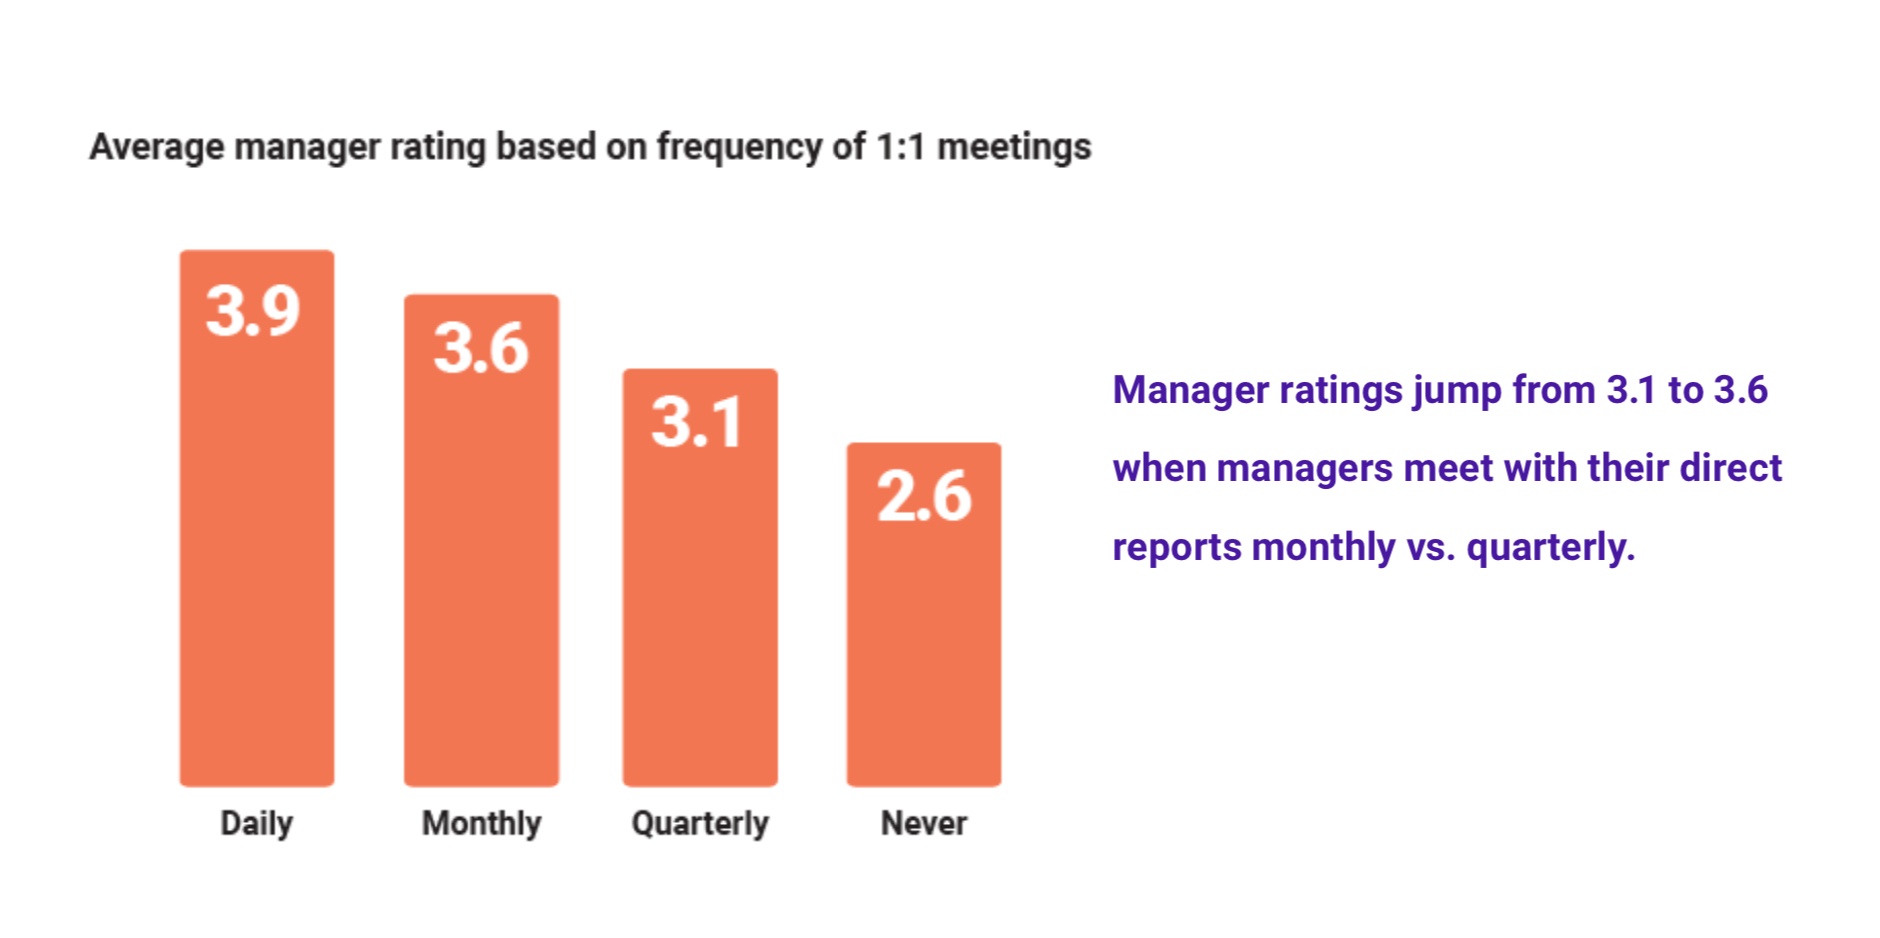 restaurant managers who meet more often with employees are rated better